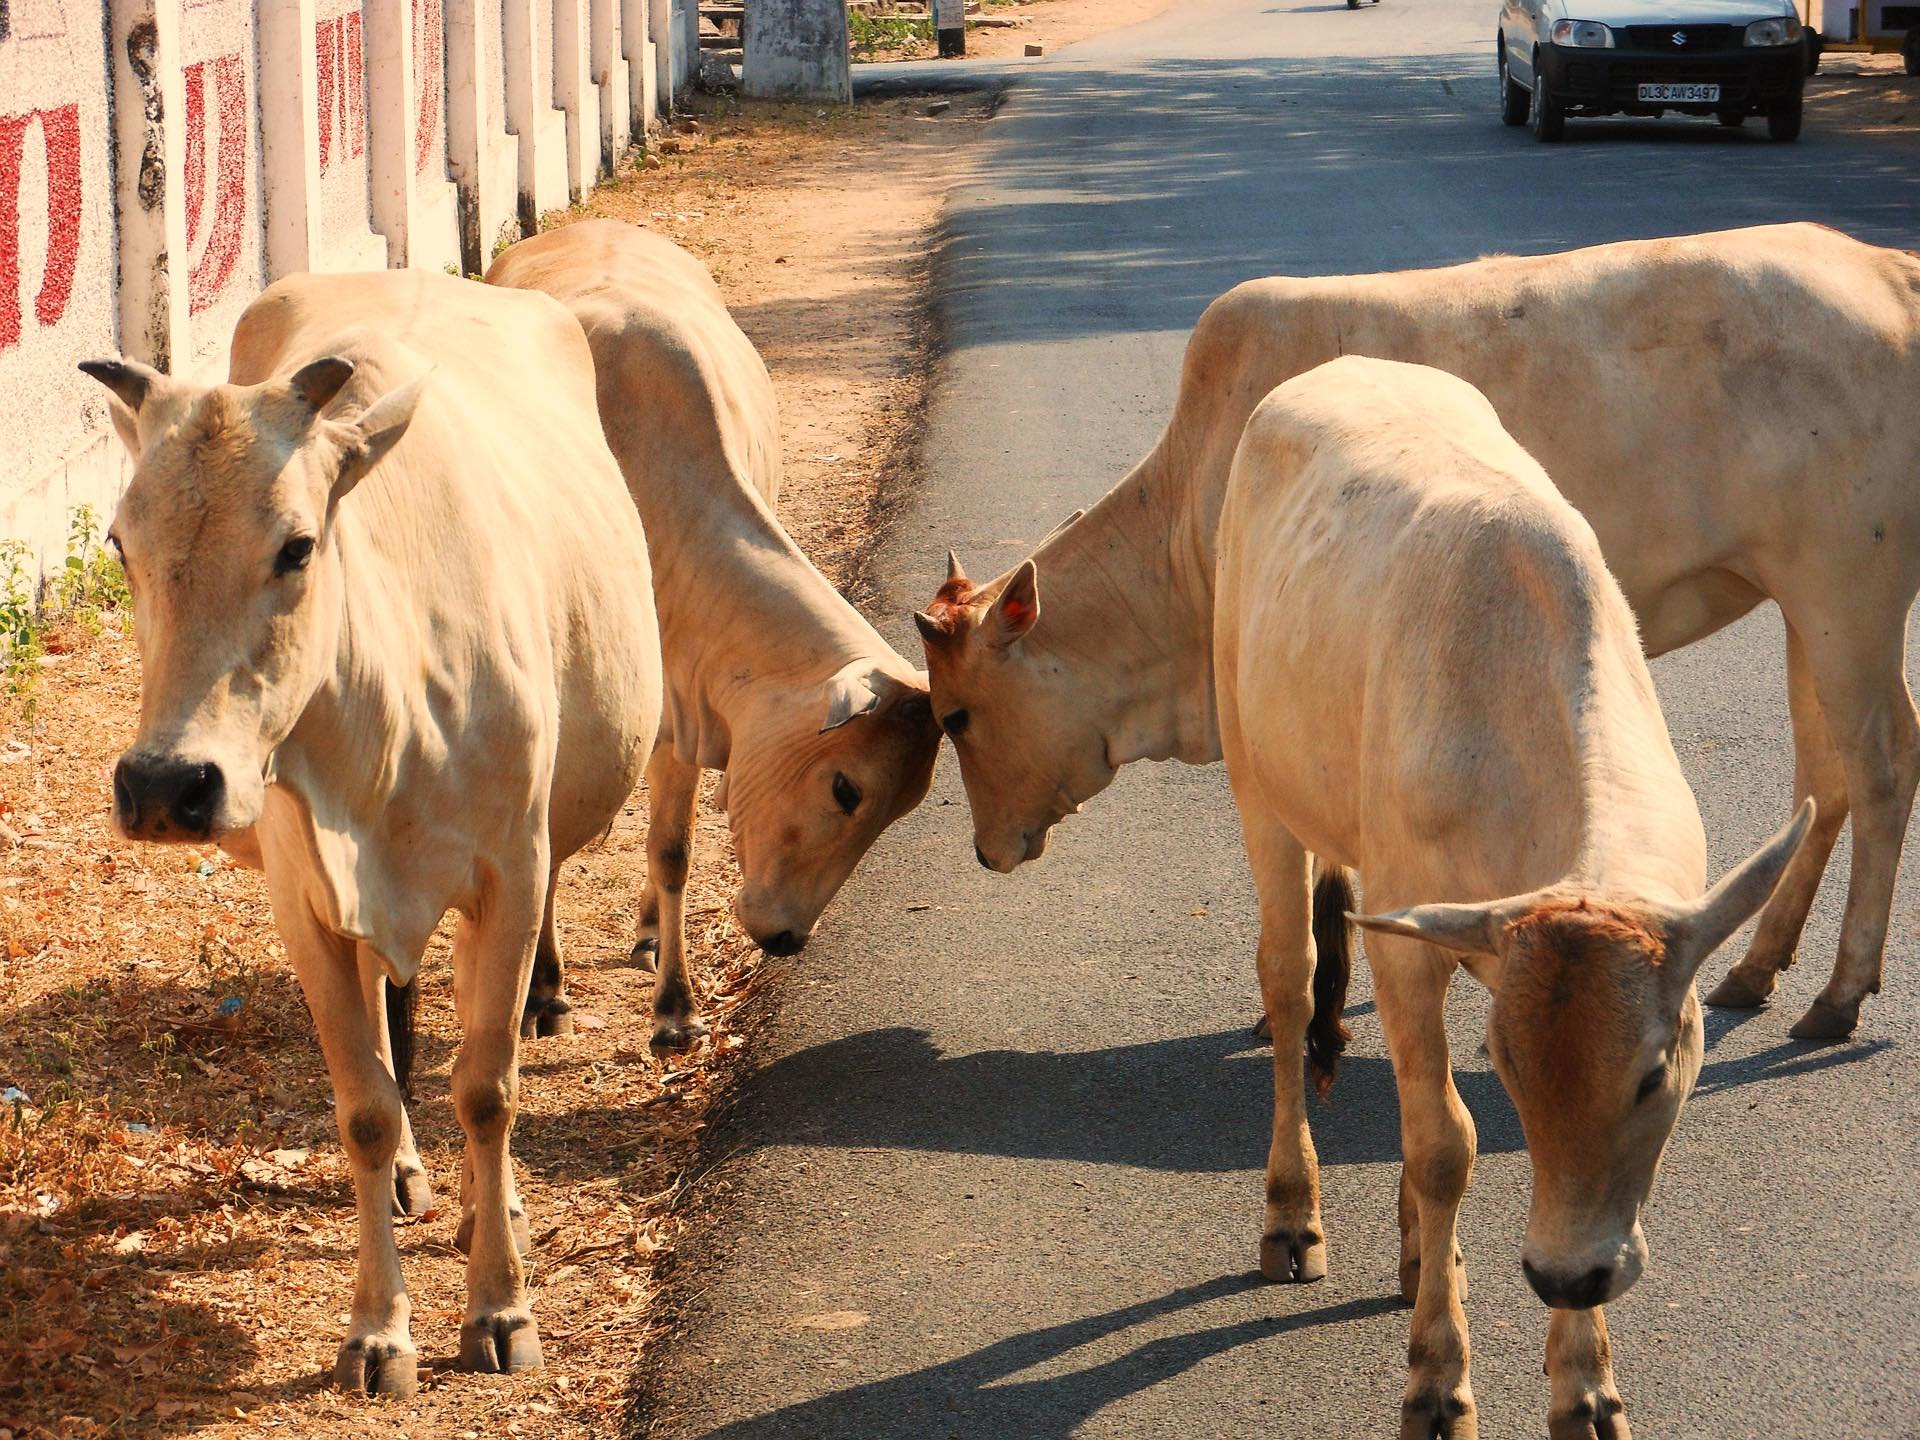 Modi Government's Stance on Slaughter Proves It Doesn't Really Care About Cows